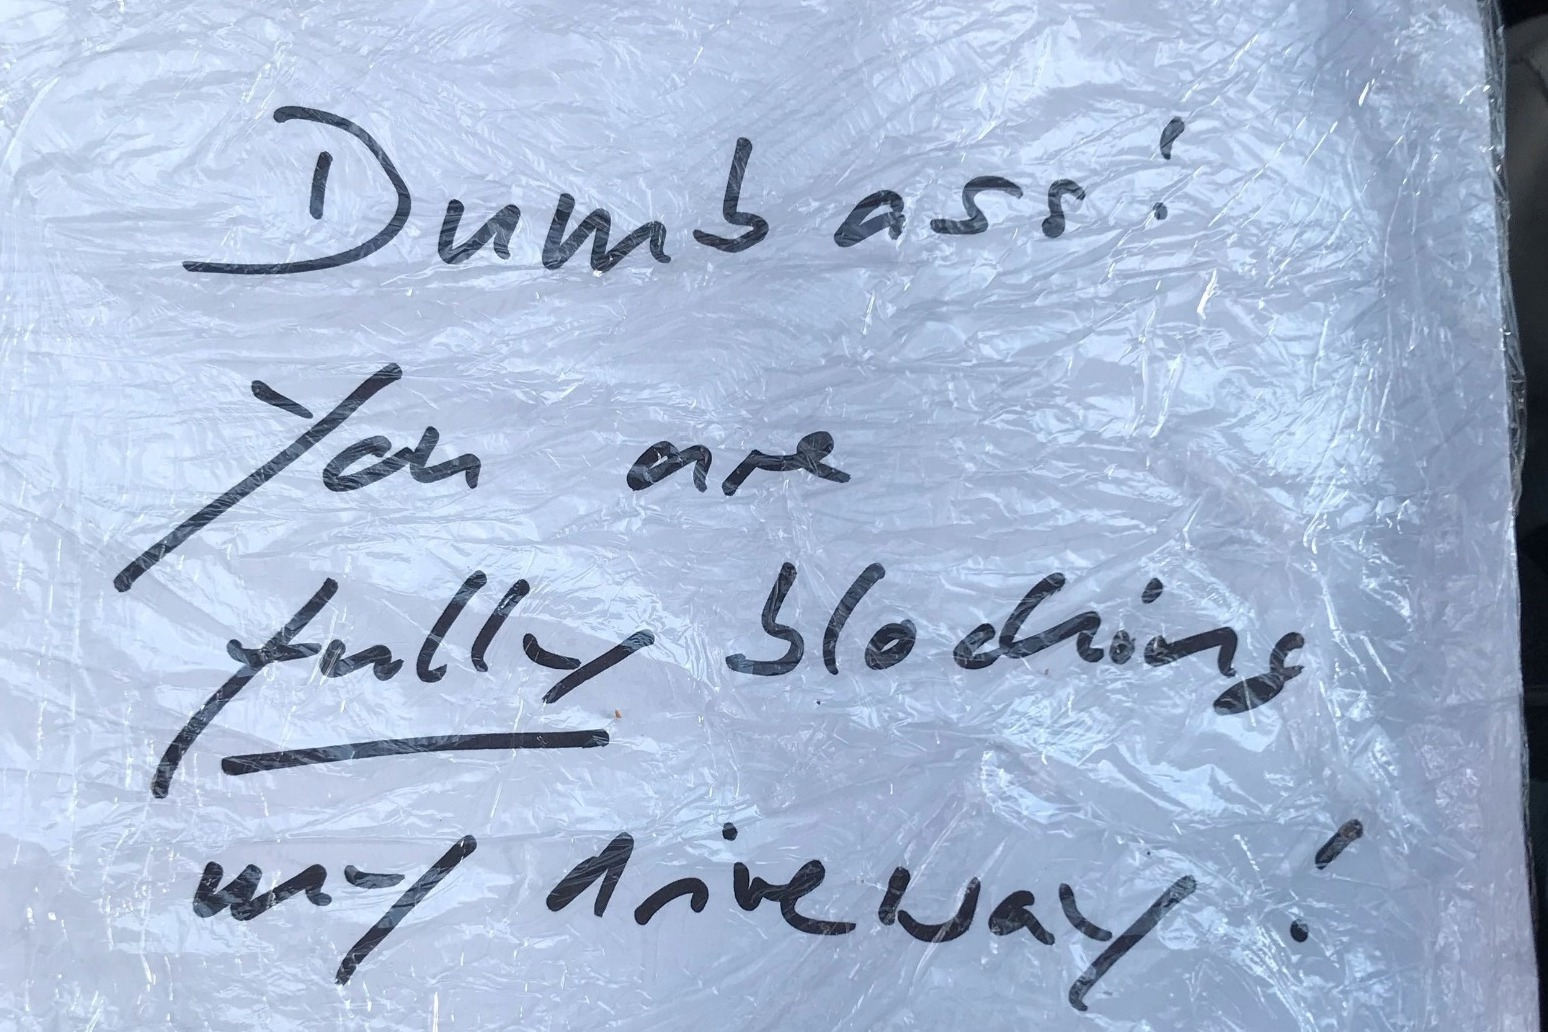 DISGRUNTLED RESIDENT LEAVES NOTE INSULTING PARAMEDICS FOR BLOCKING DRIVEWAY